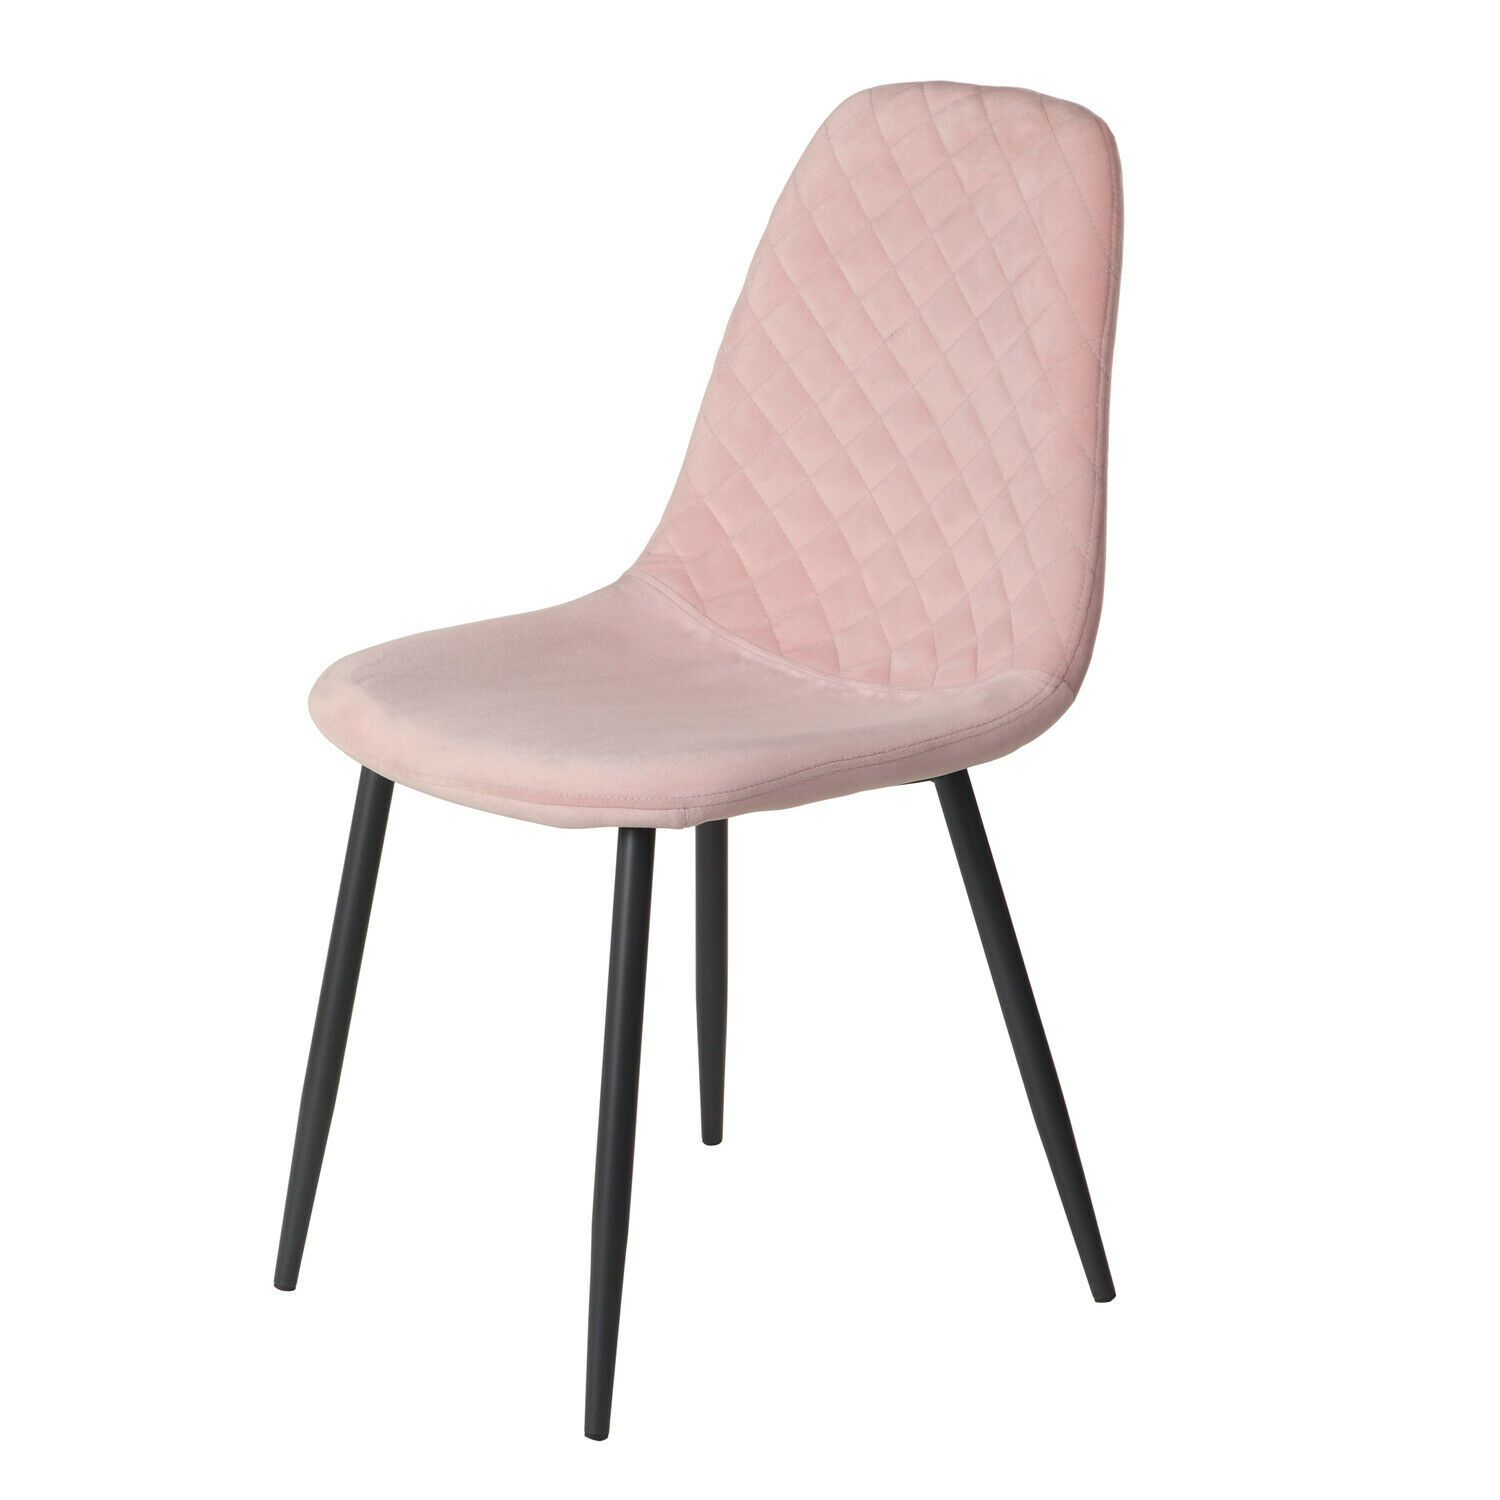 Pink Diamond Velvet Alfie Scandi Eames Style Dining Chair Black Metal Leg - Pebble & Leaf HomeFurniture